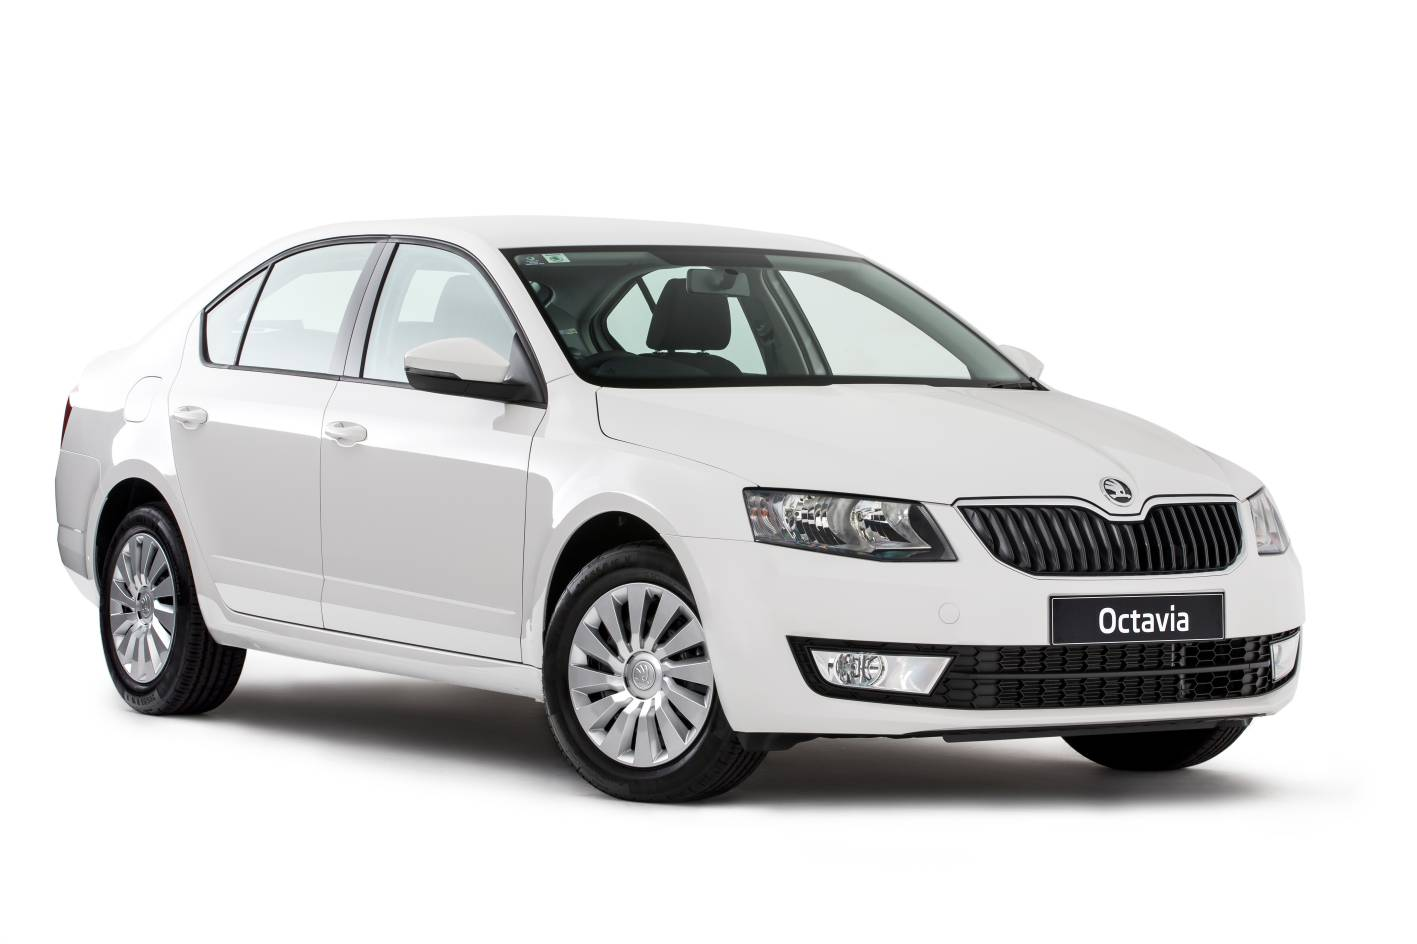 skoda cars news 2014 octavia pricing and specifications. Black Bedroom Furniture Sets. Home Design Ideas